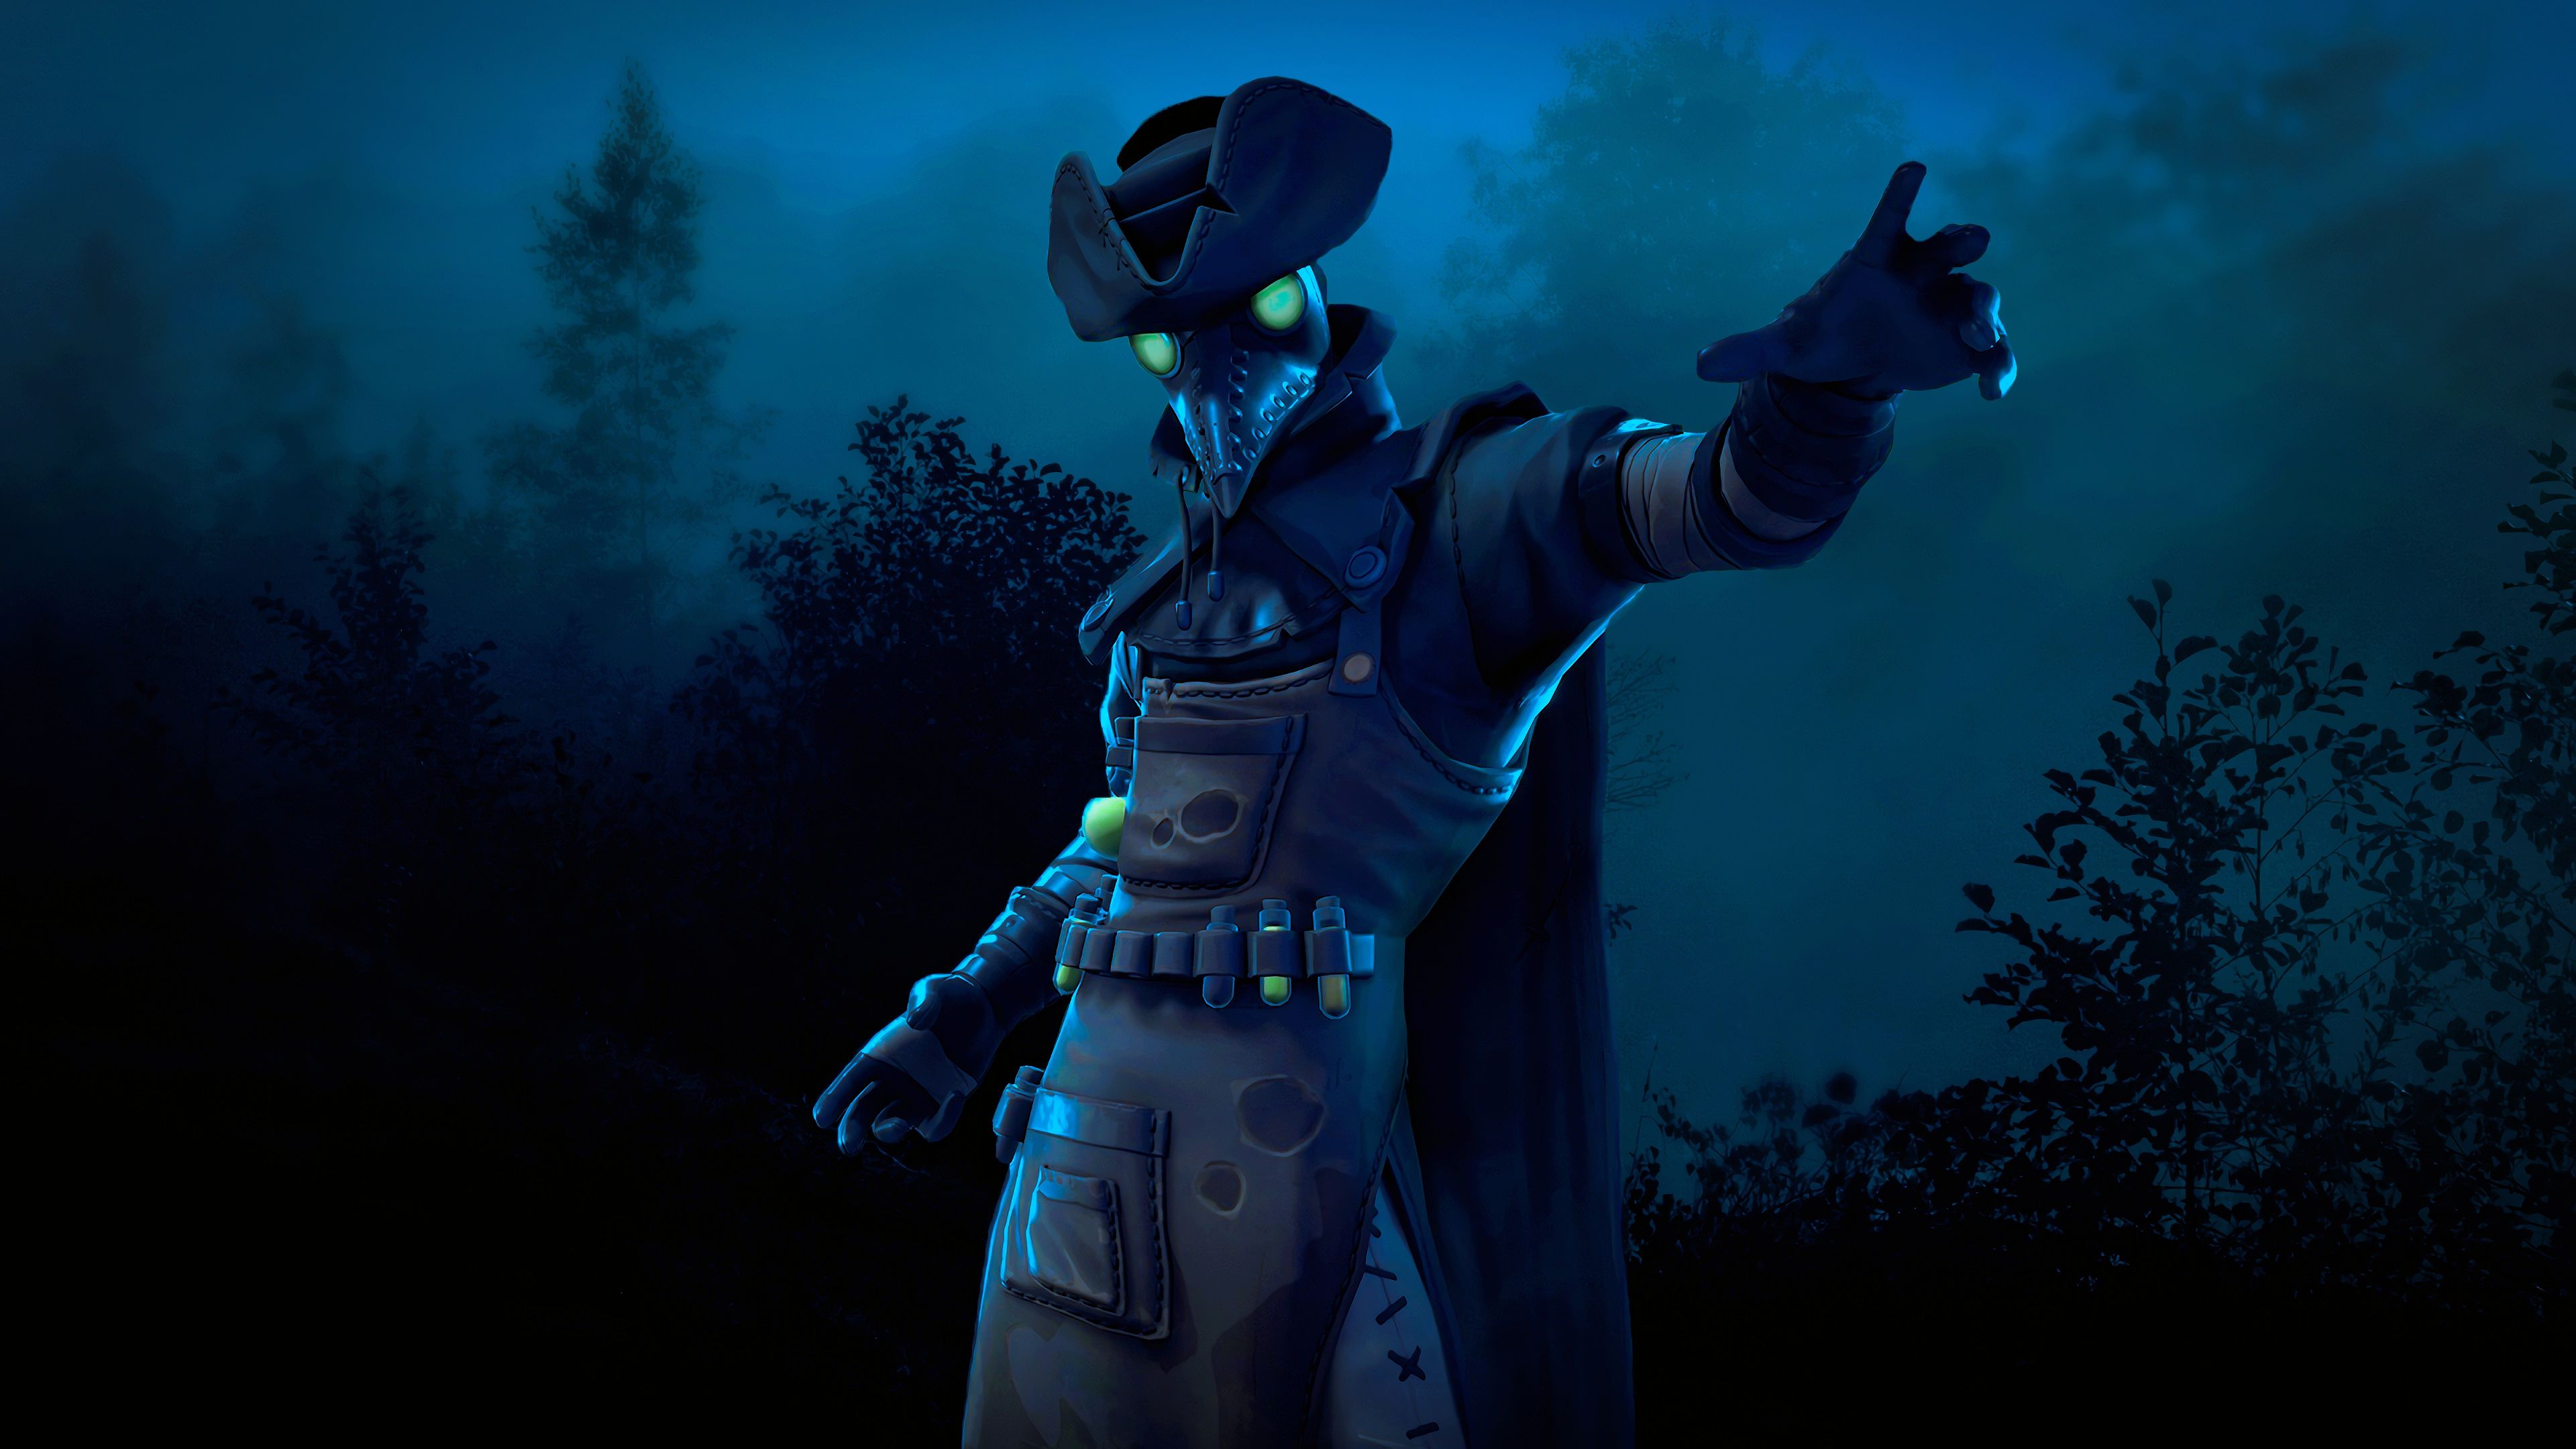 Plague Fortnite Season 6 4k Wallpapers Ps Games Wallpapers Hd Wallpapers Games Wallpapers Fortnite Wallp Hd Wallpaper Samsung Wallpaper Cool Wallpapers Dark